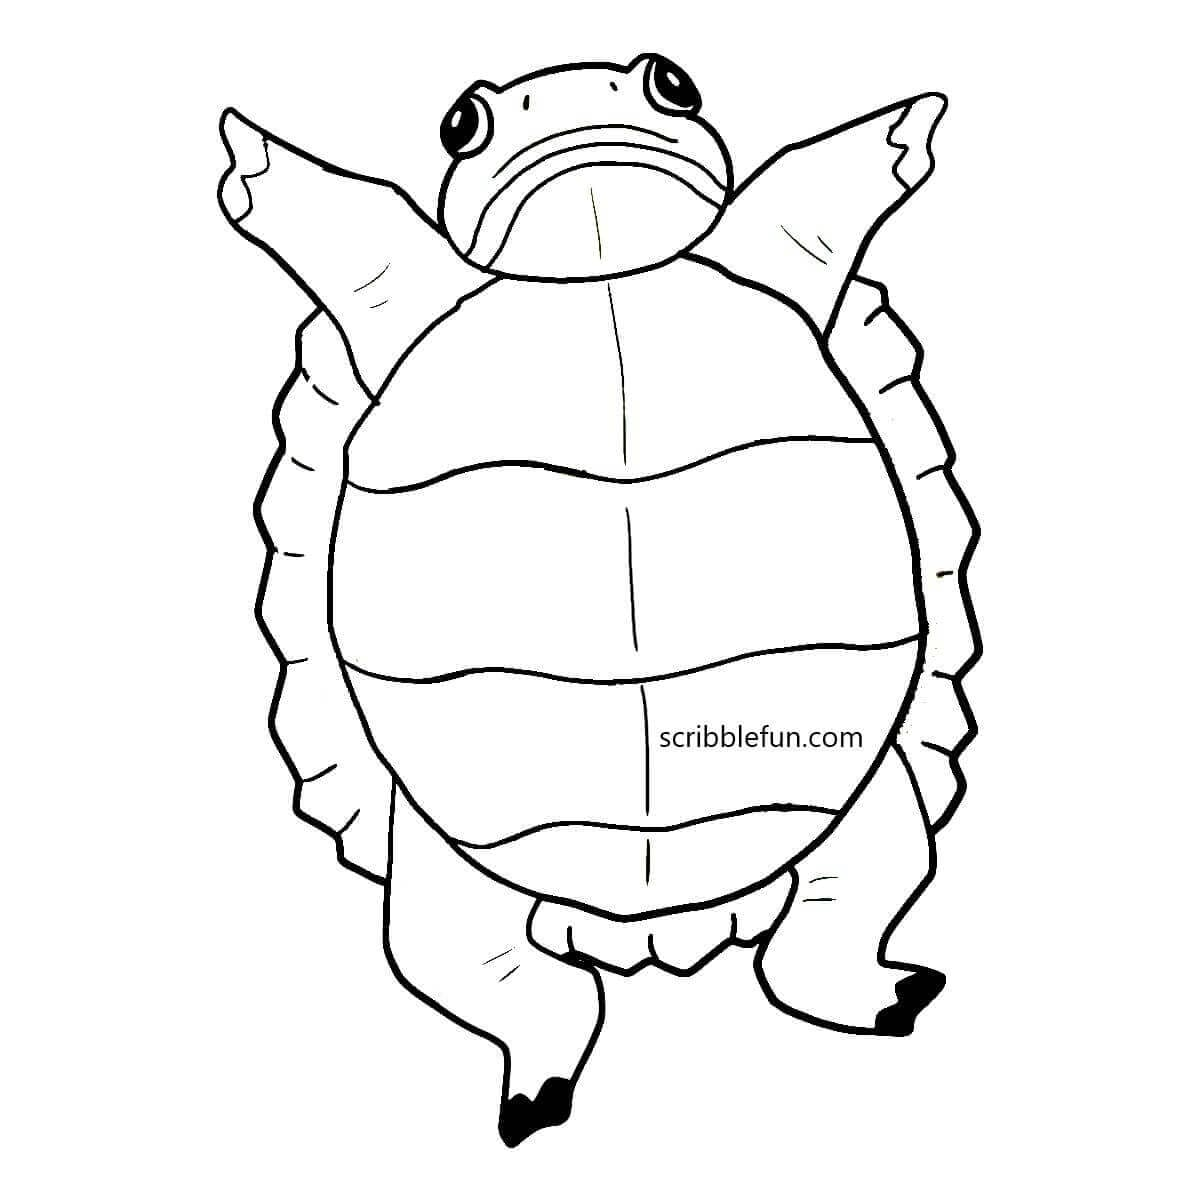 Turtle stretching